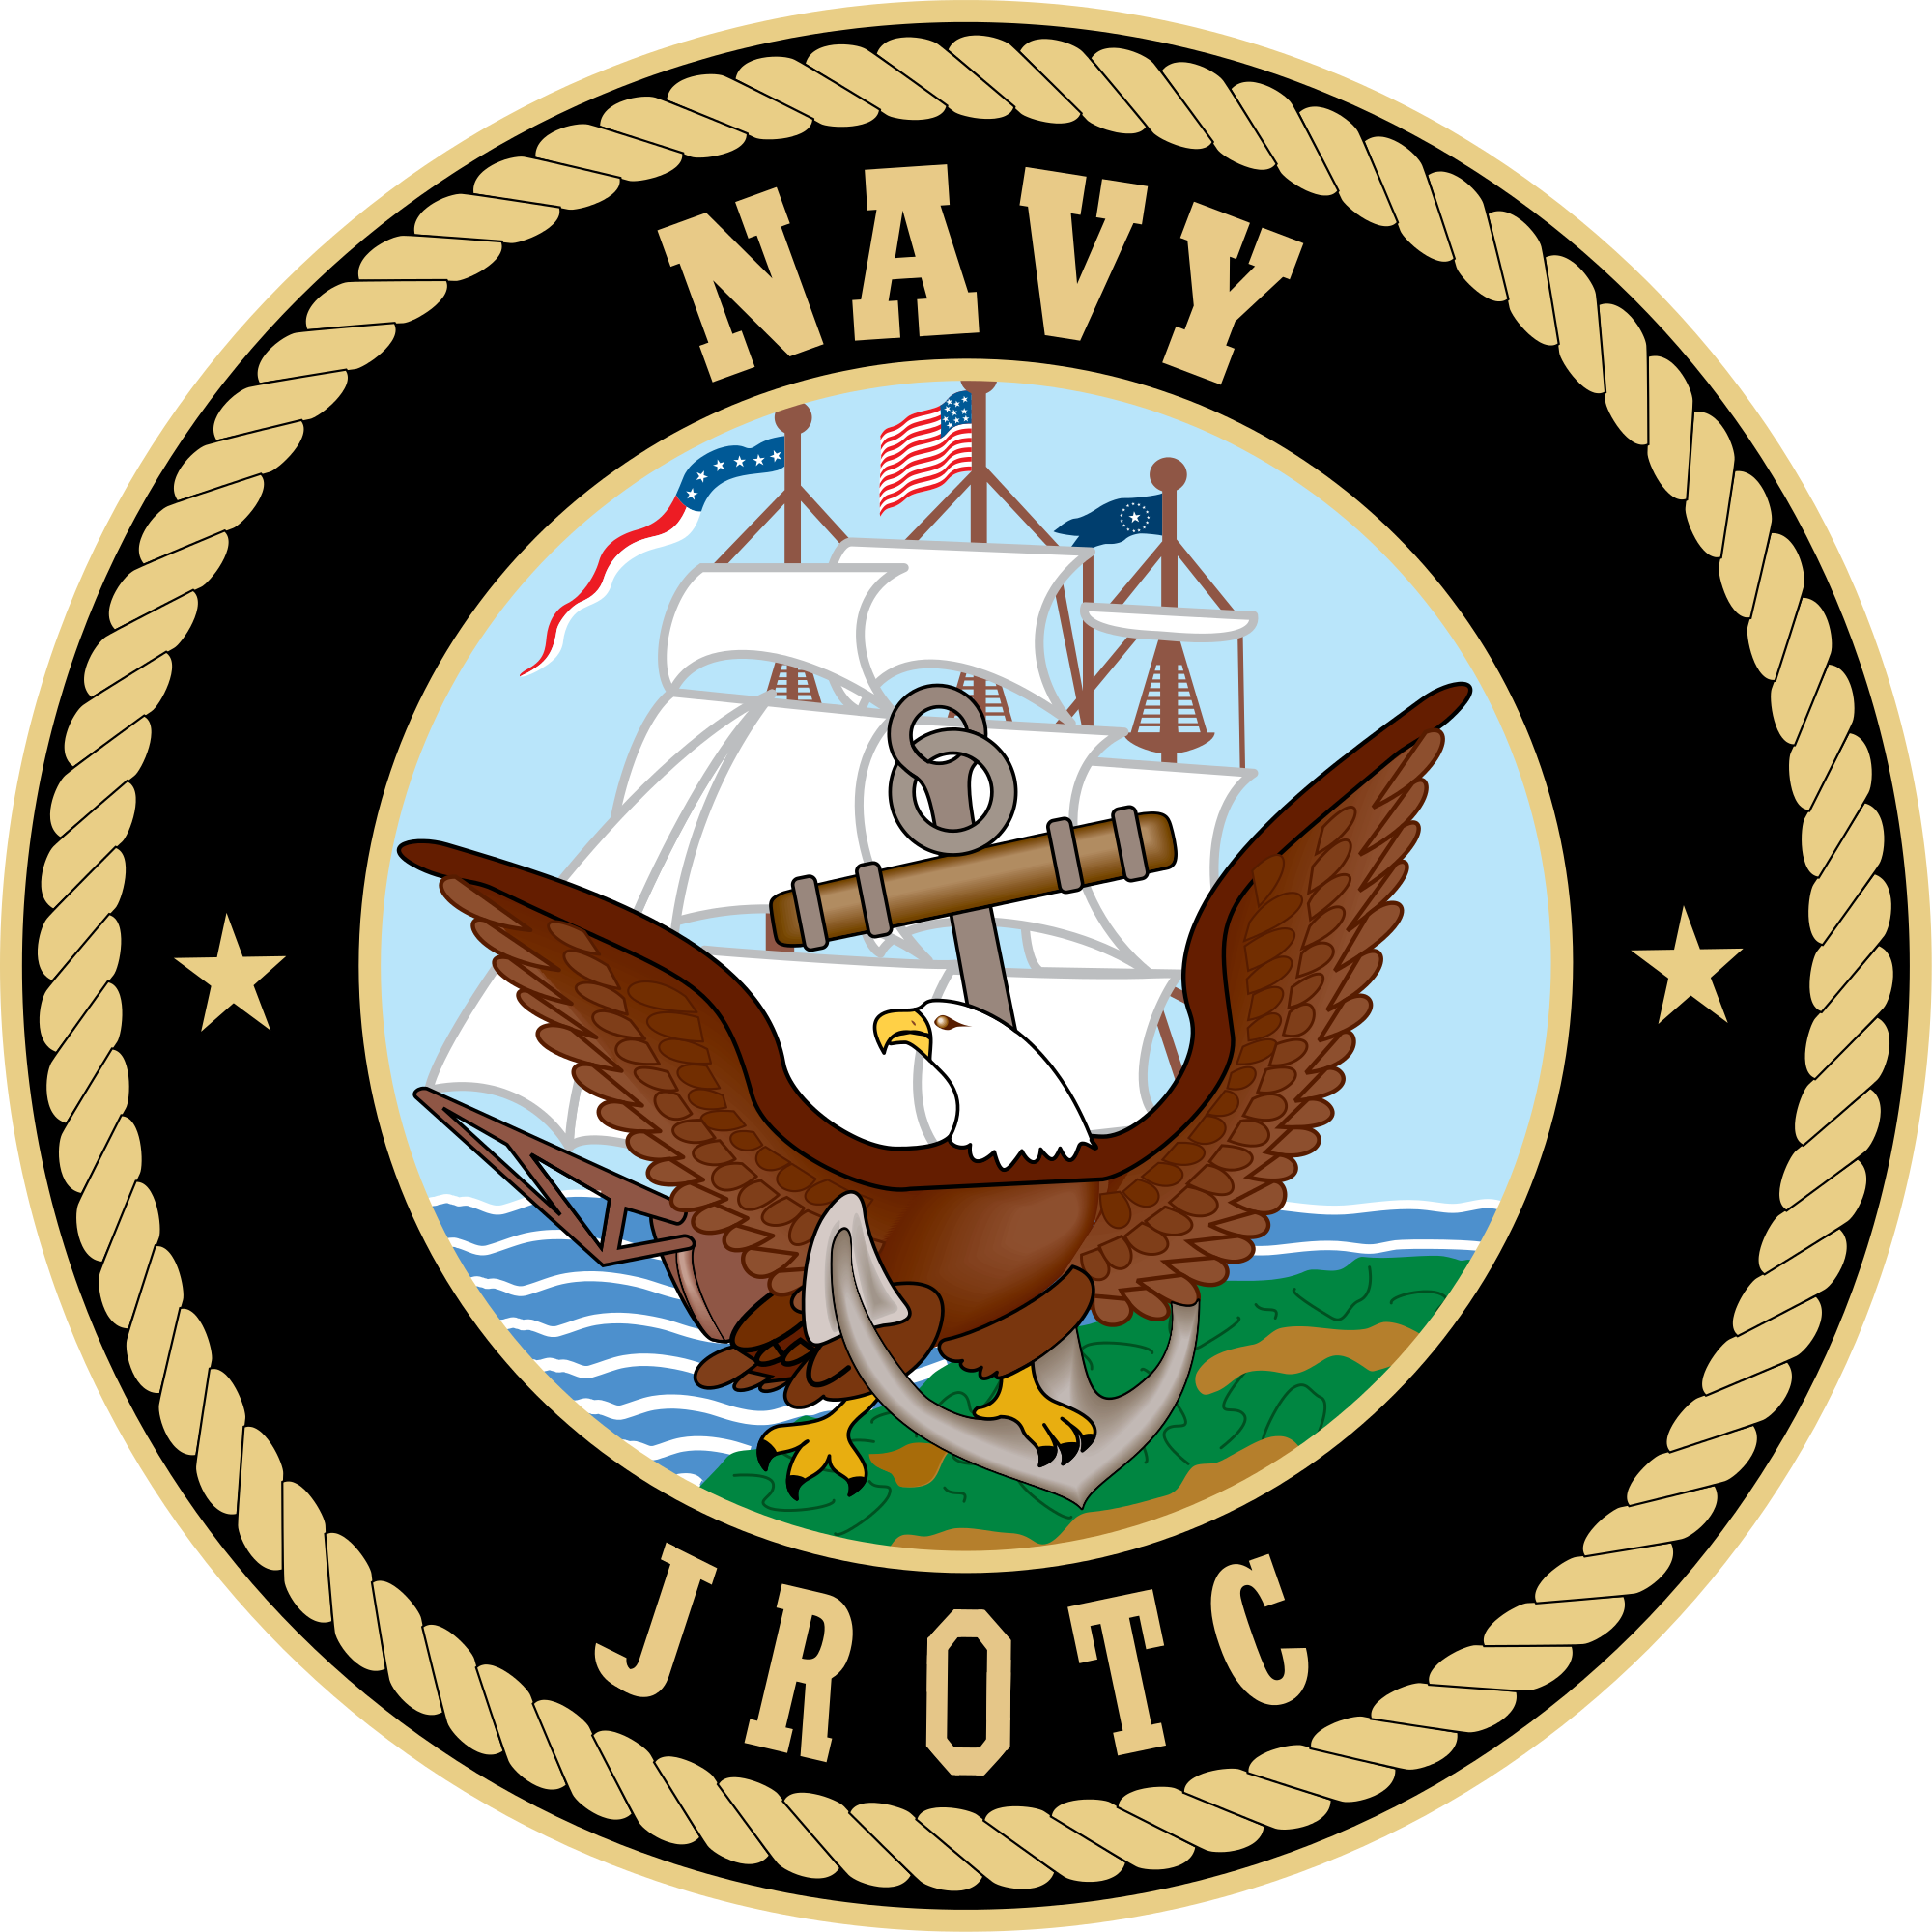 Navy clipart insignia. File seal of the